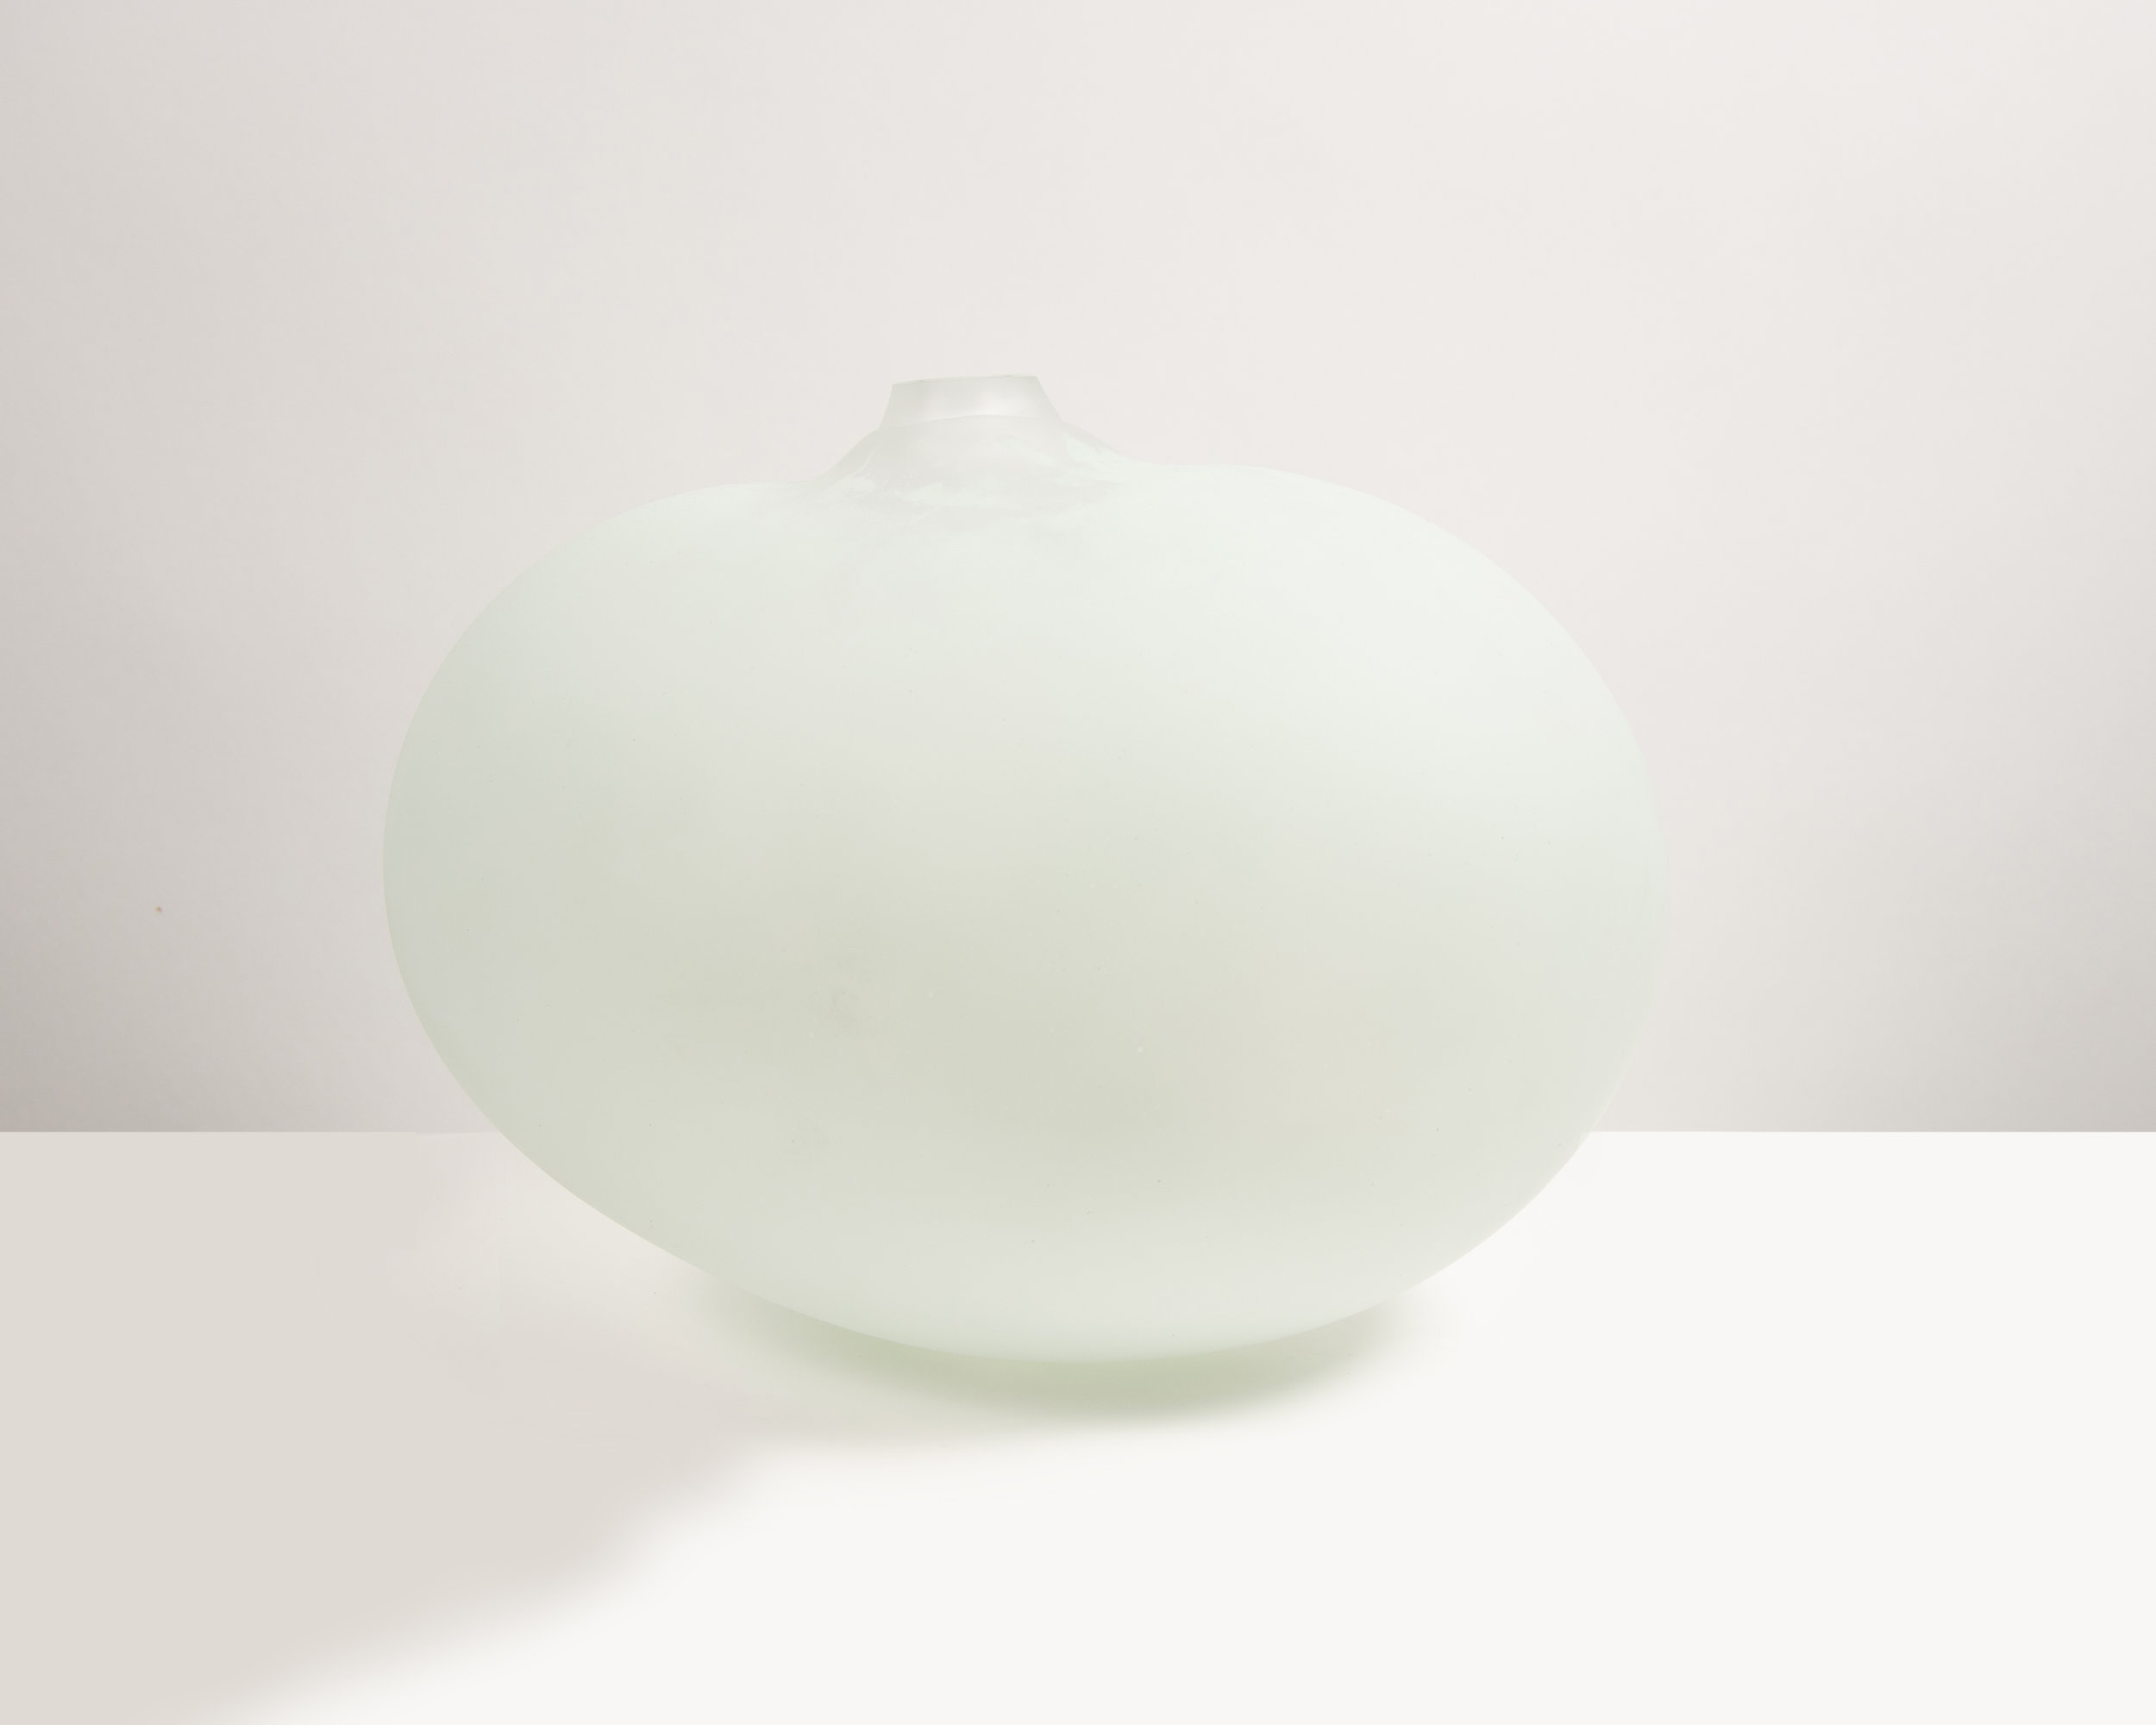 Super Egg , 2019, Blown glass, 20 x 14.25 x 14.25""